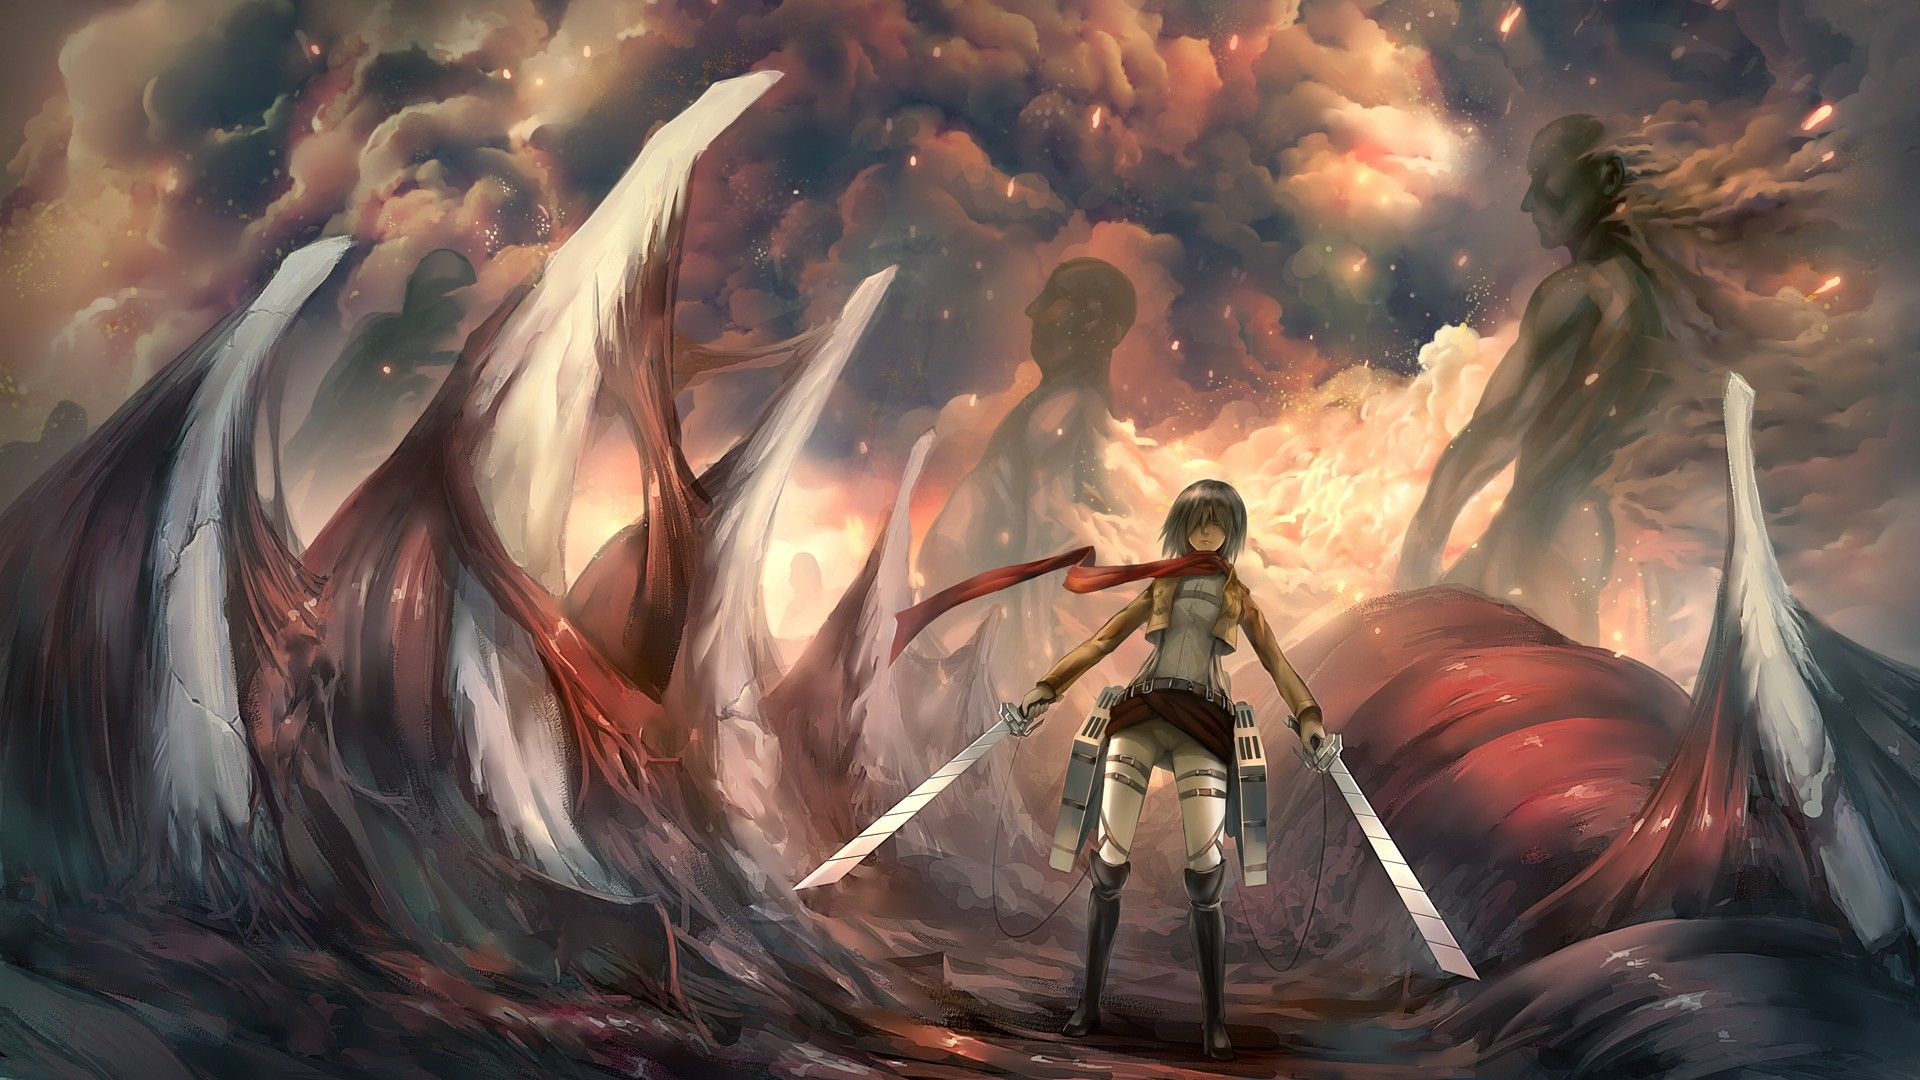 130 Attack On Titan Wallpapers Attack On Titan Backgrounds Attack On Titan Art Attack On Titan Hd Anime Wallpapers